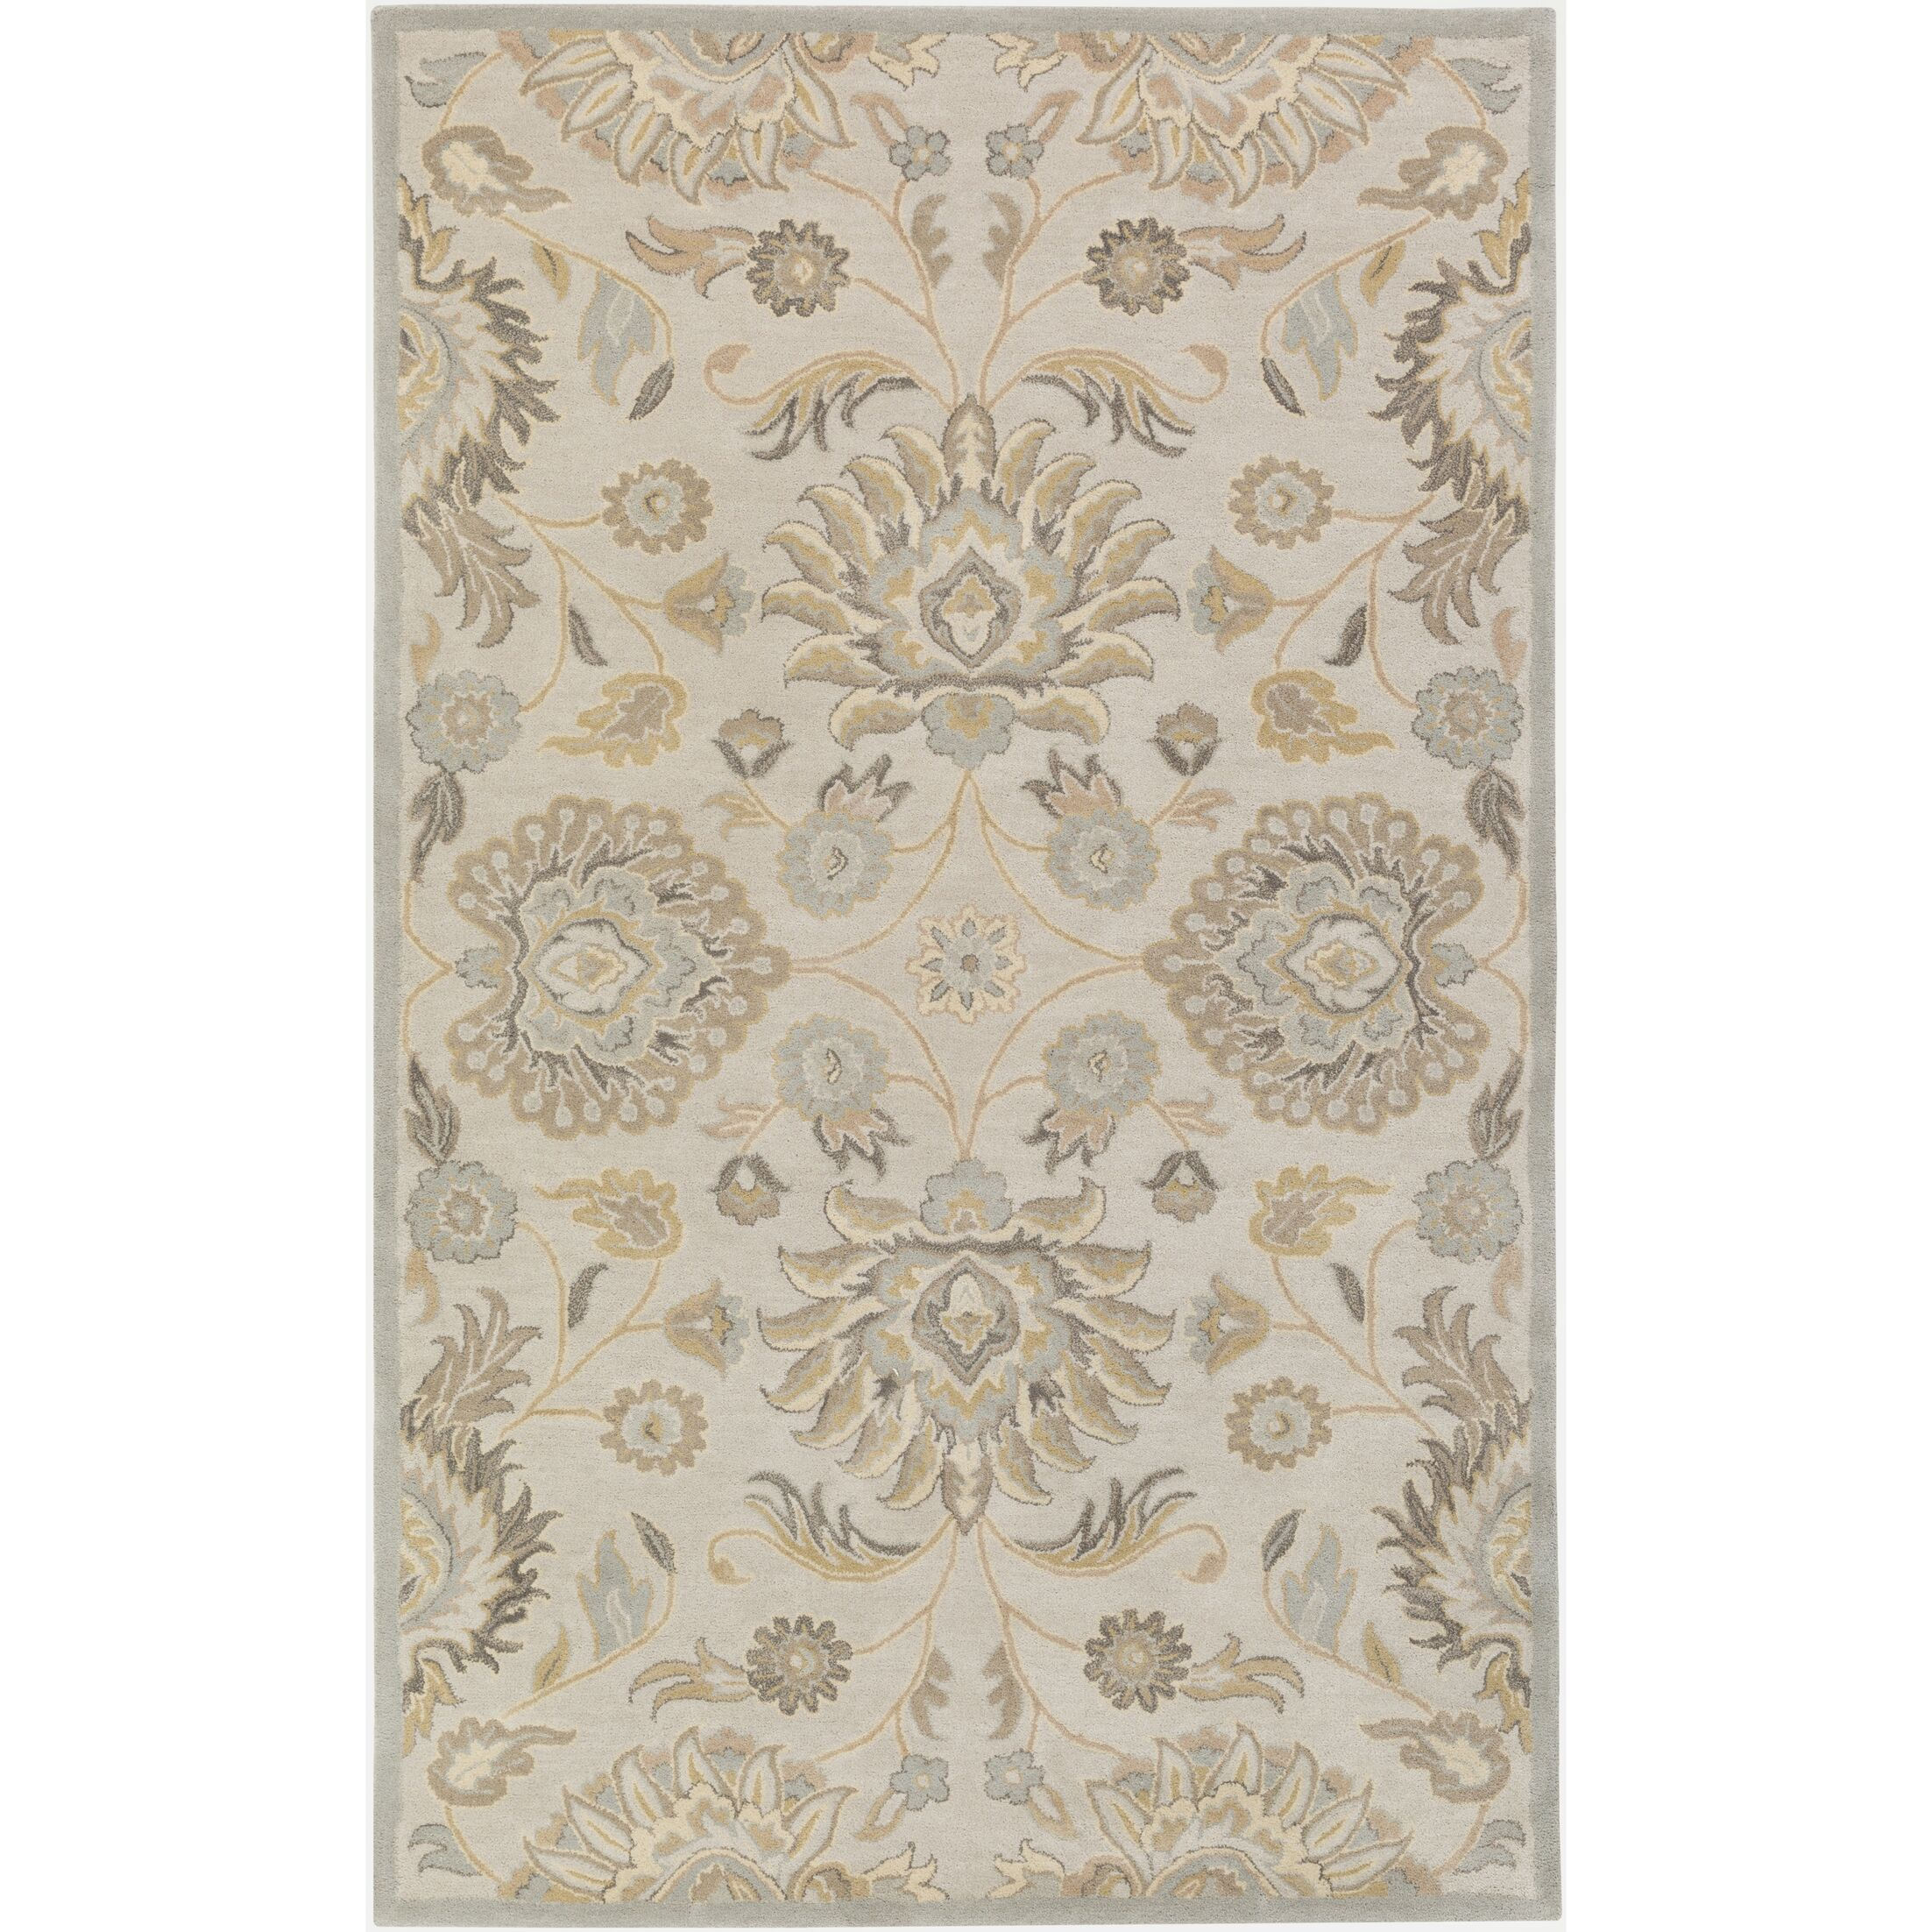 Topaz Hand-Tufted Light Gray/Khaki Area Rug Rug Size: Round 9'9